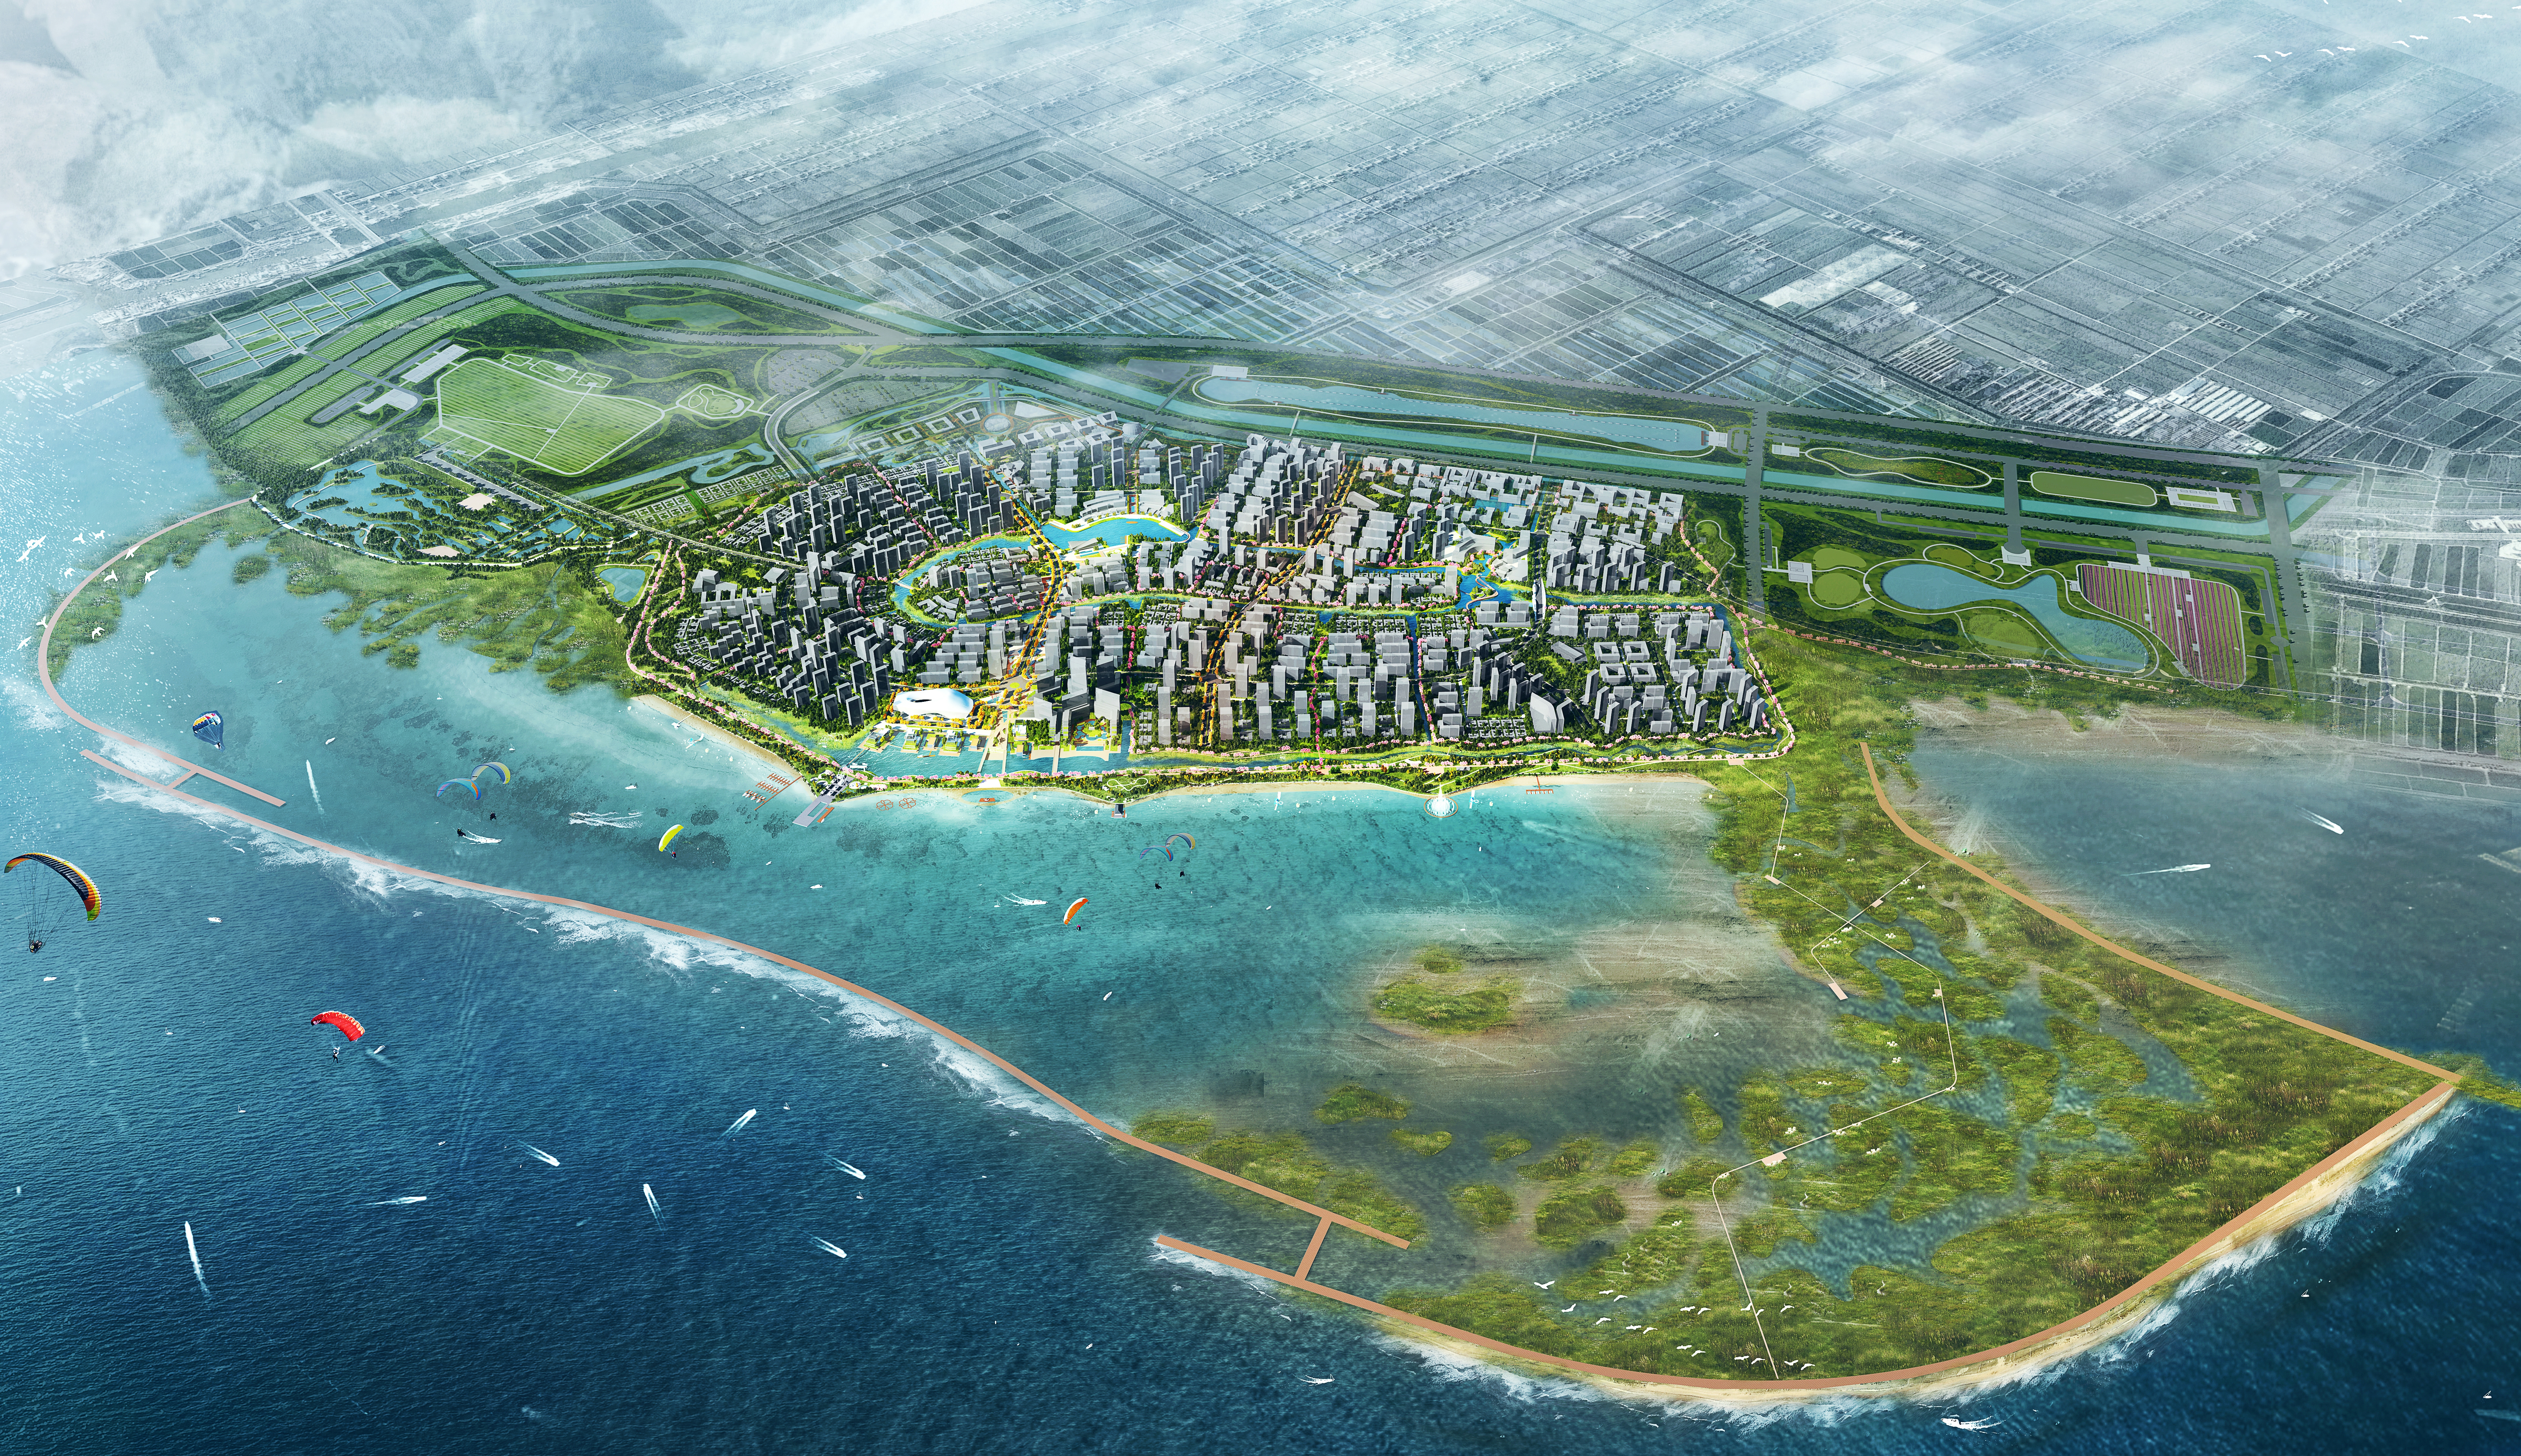 aerial rendering of futuristic city on the water with buidlings, wetlands, and roads